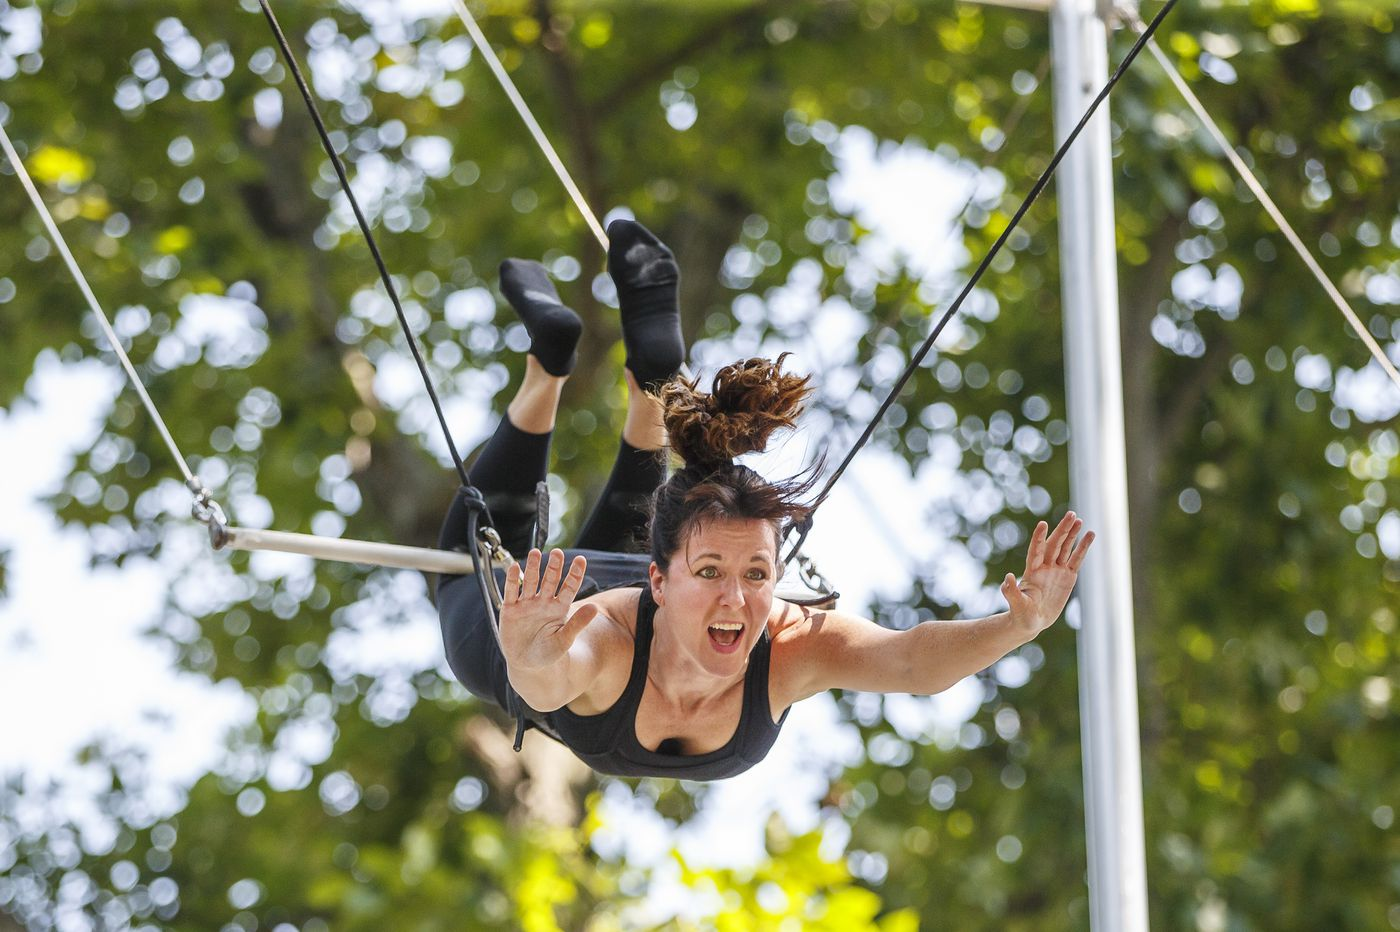 Want to learn flying trapeze? The Philadelphia School of Circus Arts is offering lessons